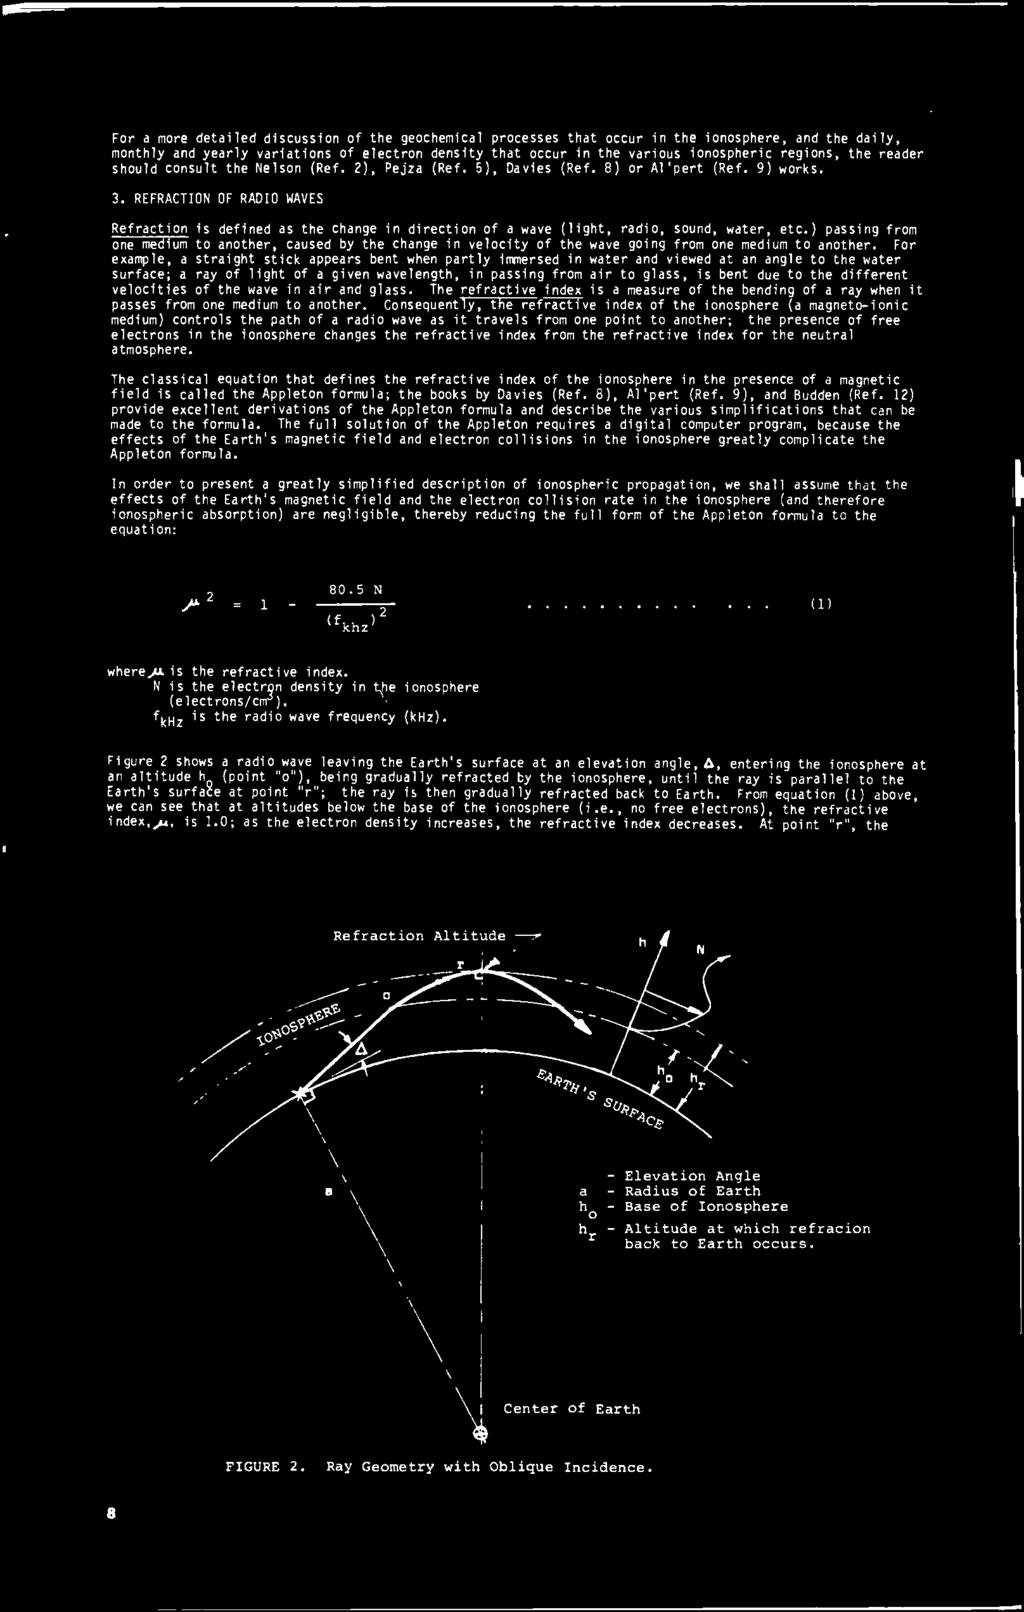 Of Contents 2 Reverse Paths Us 6 Canadian To 78 Trans Relay Hbridge Motor Controller Francesco Amirante For A More Detailed Discussion The Geochemical Processes That Occur In Ionosphere And